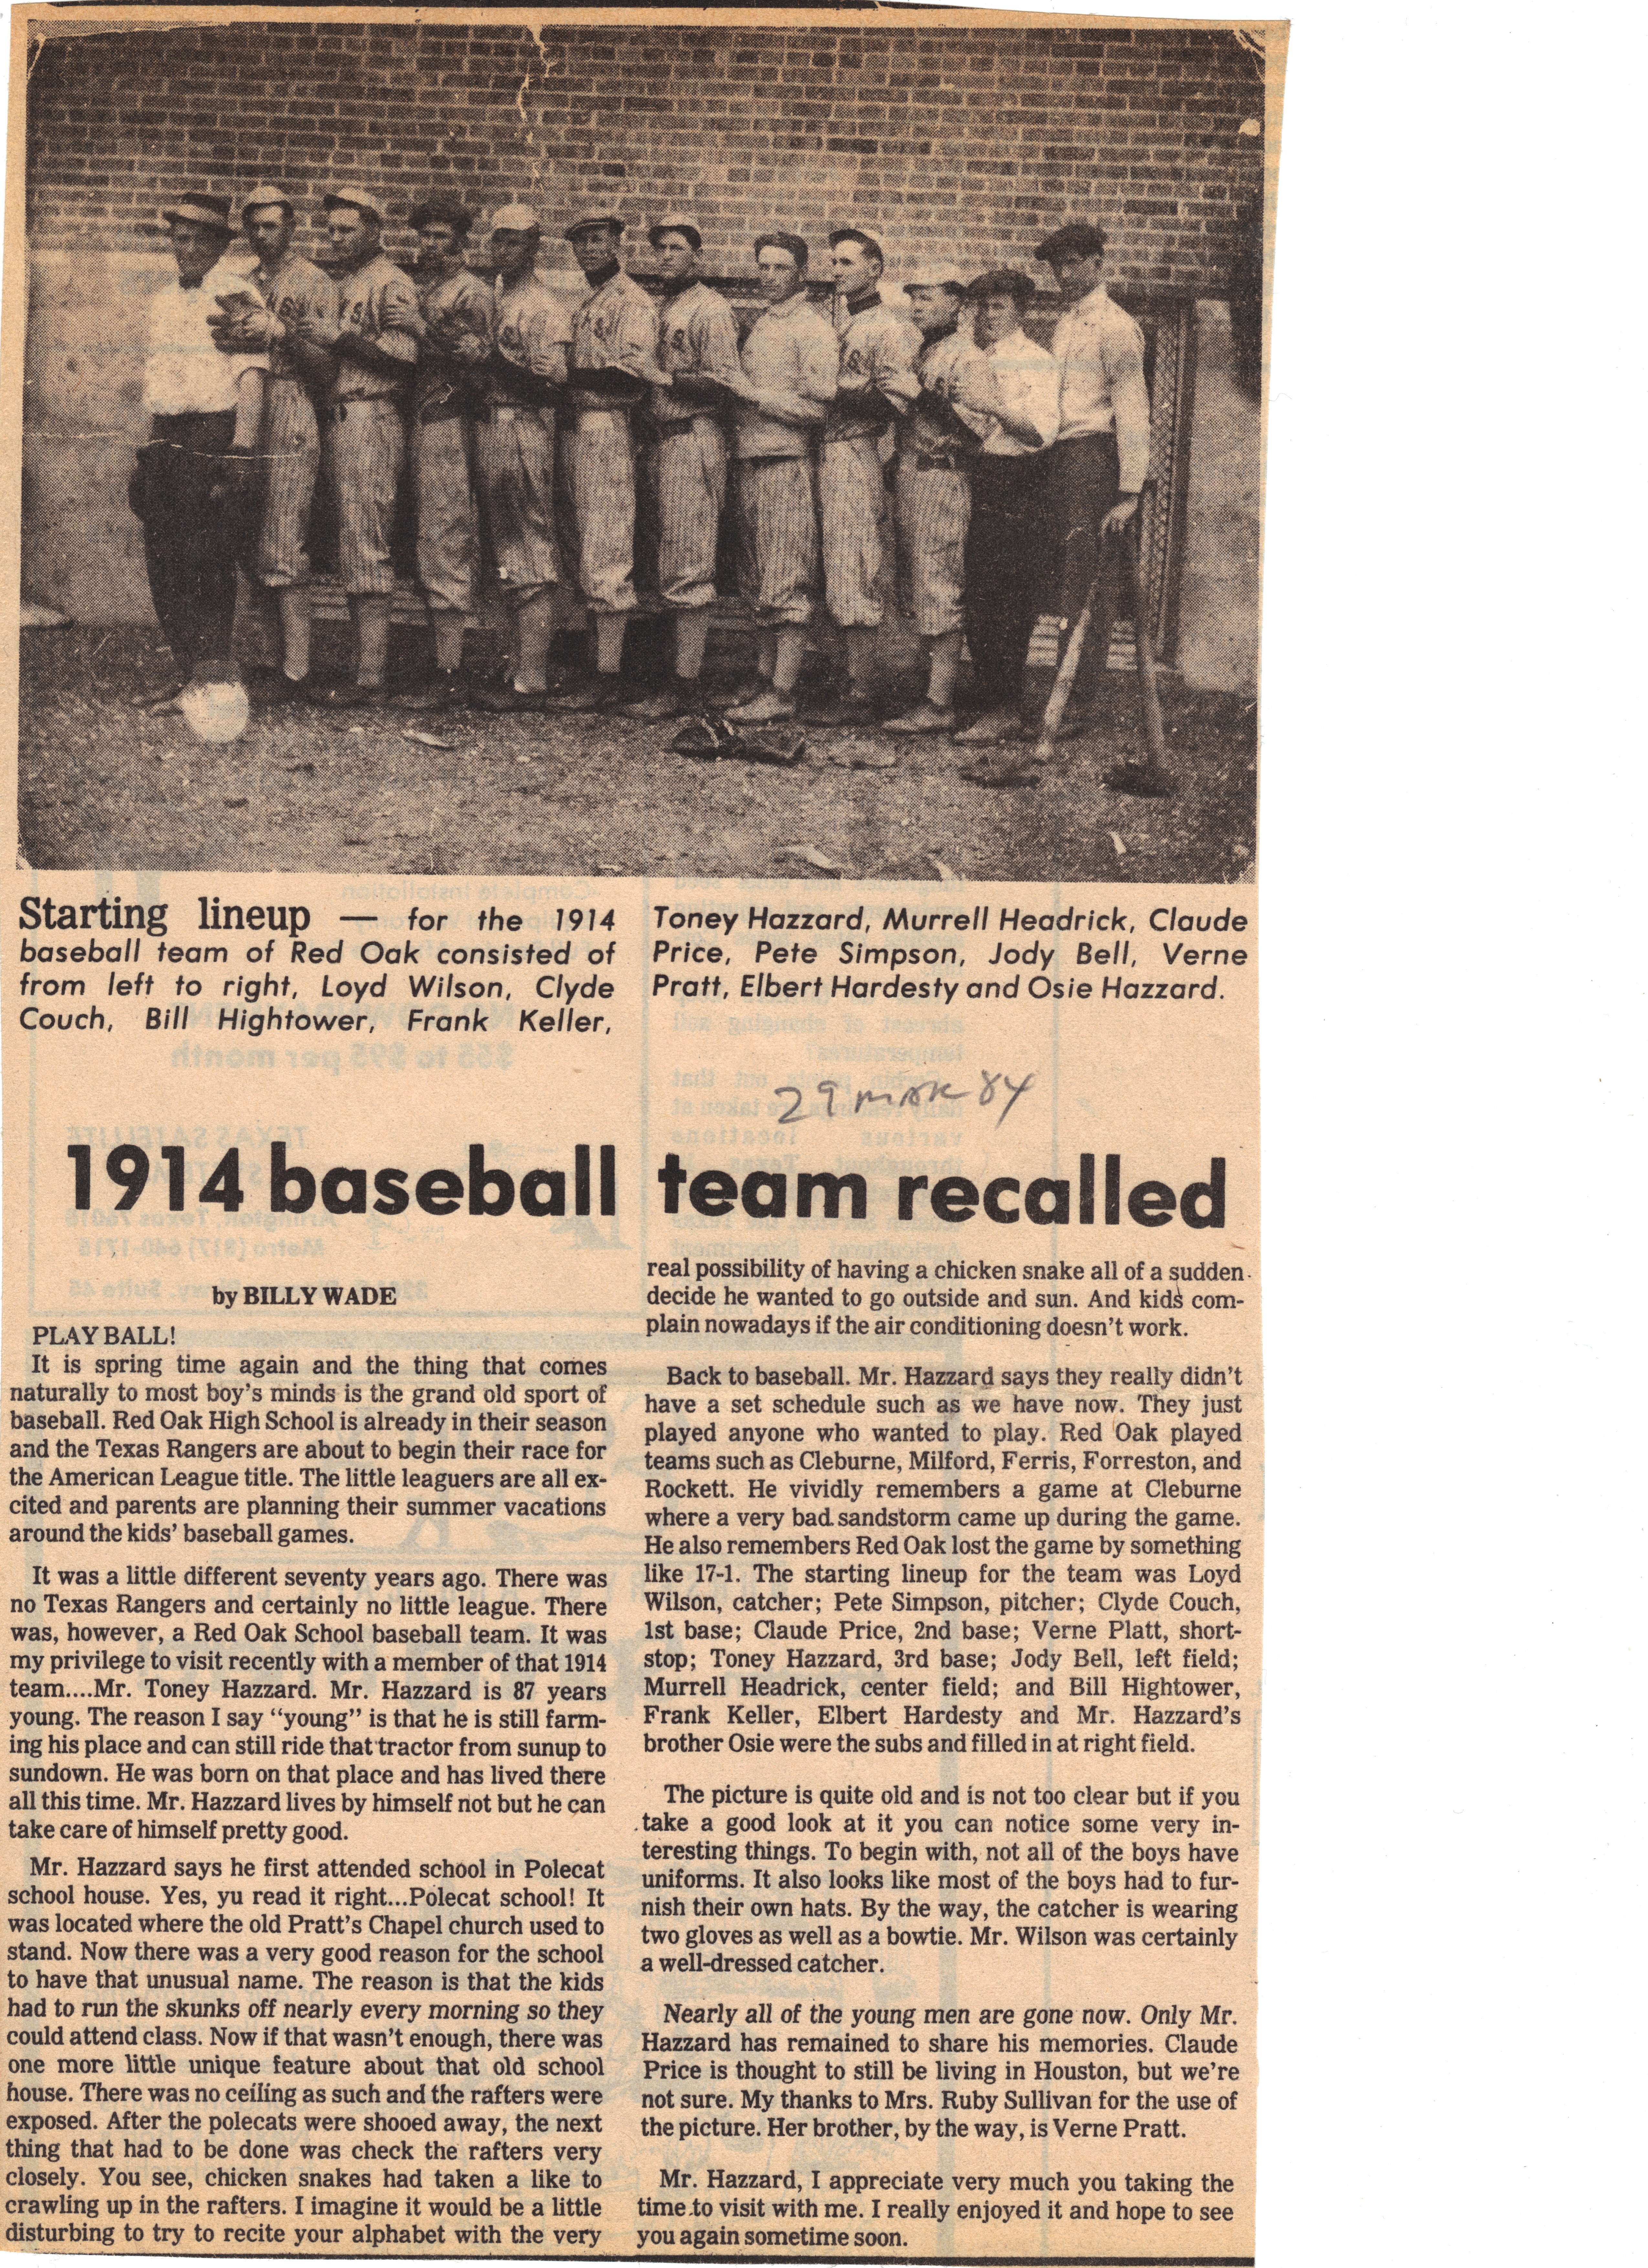 1914 baseball team recalled